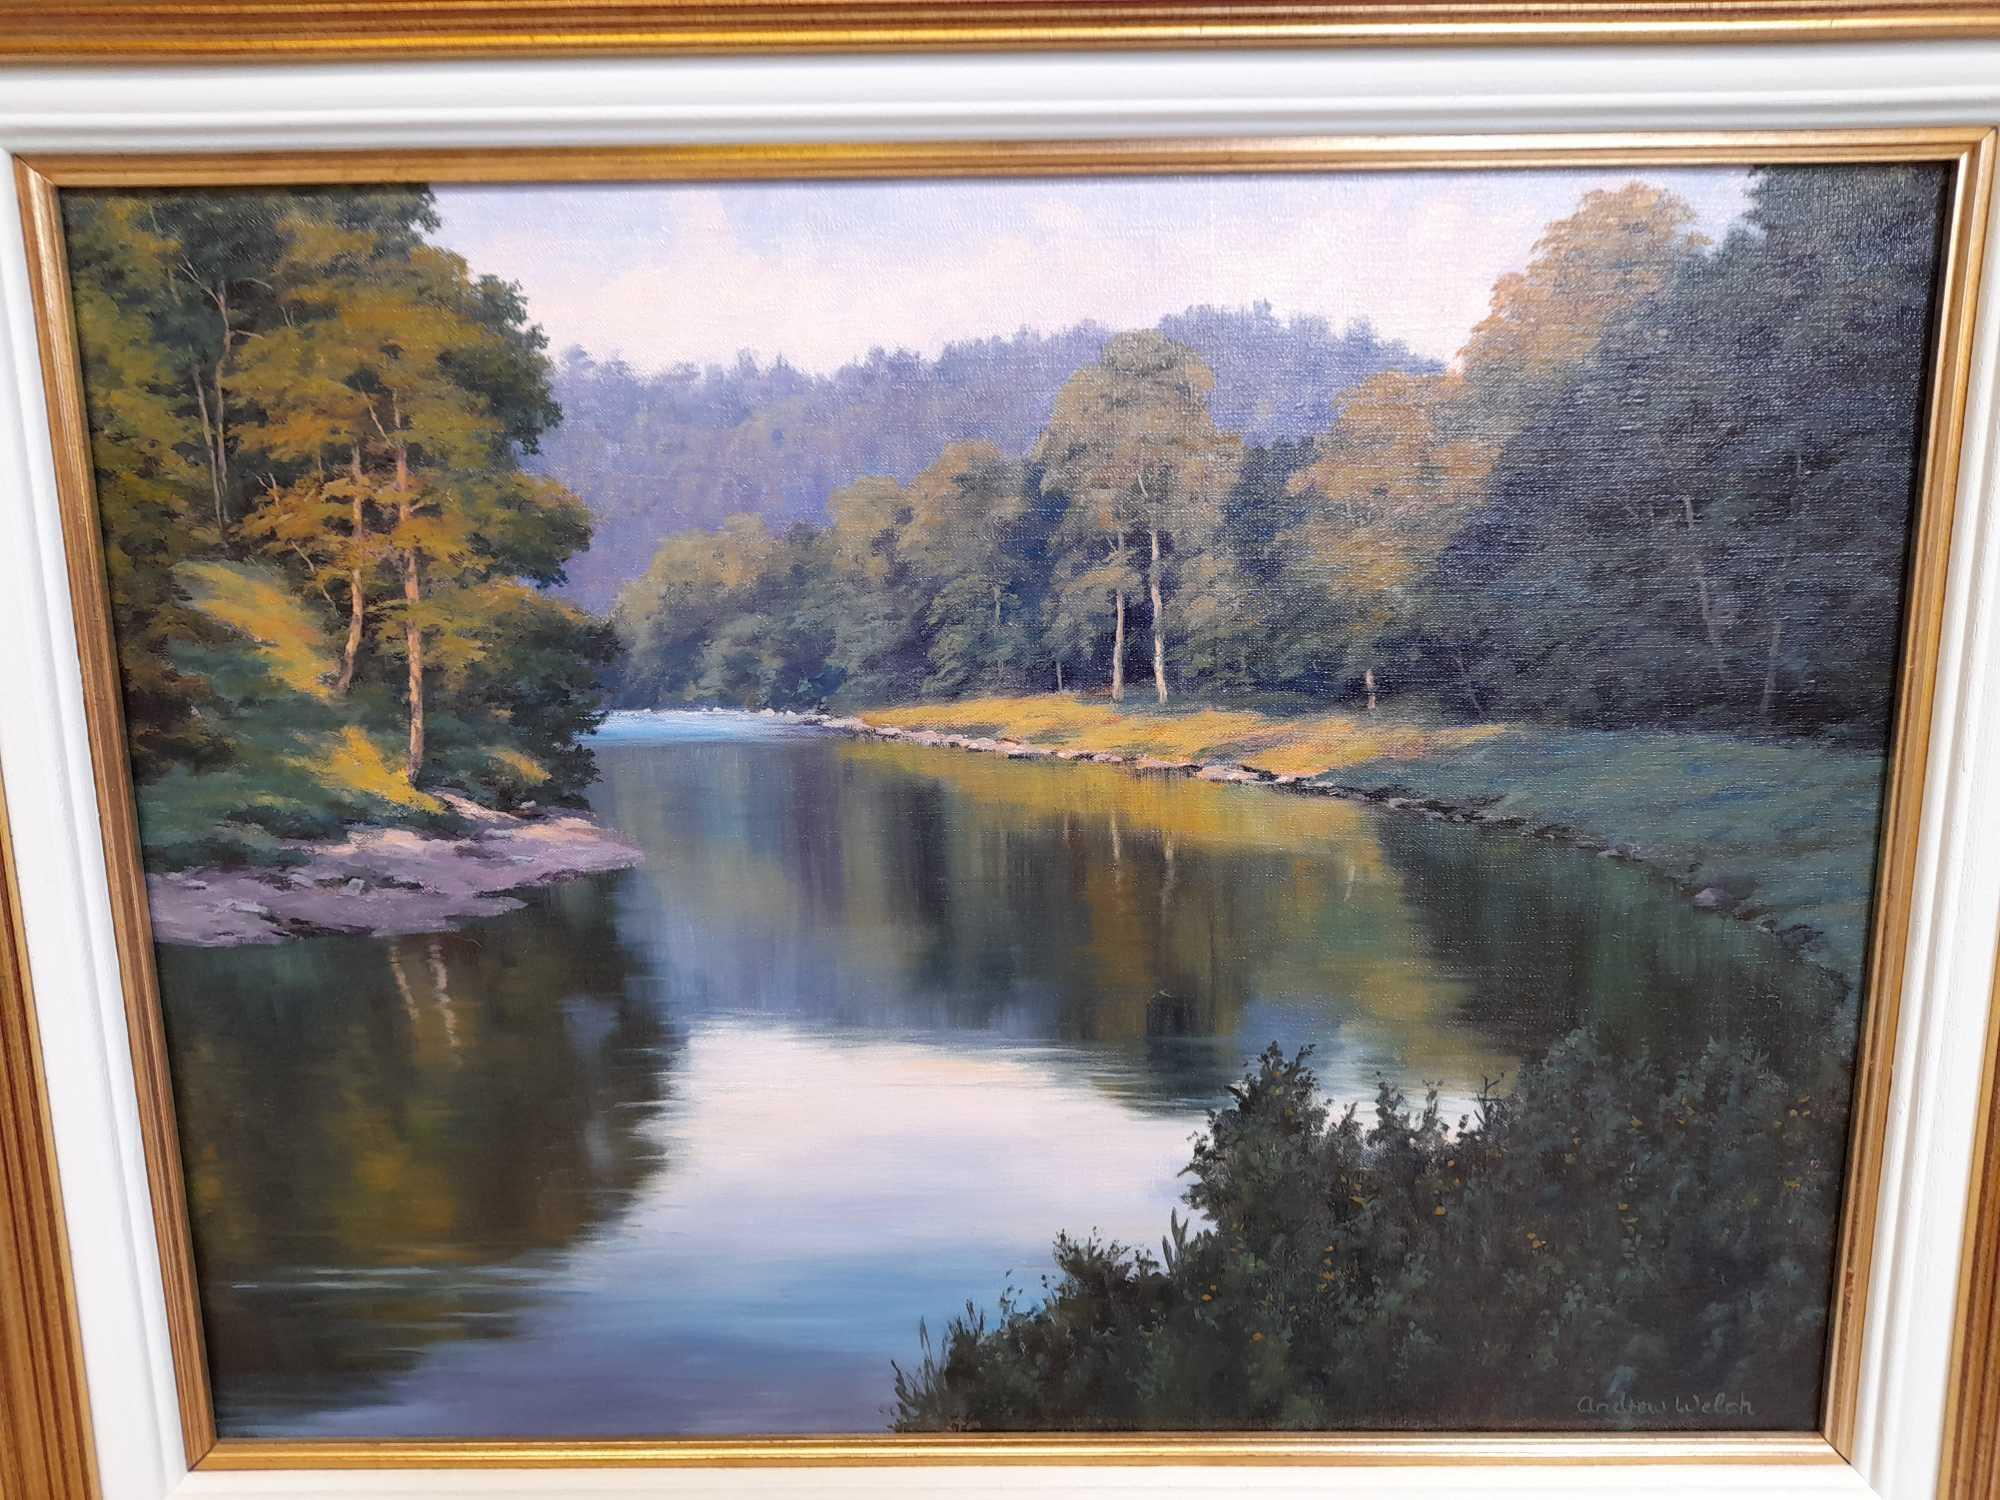 OIL PAINTING EVENING SUNSHINE FINDHORN BY A WELCH - Image 2 of 5